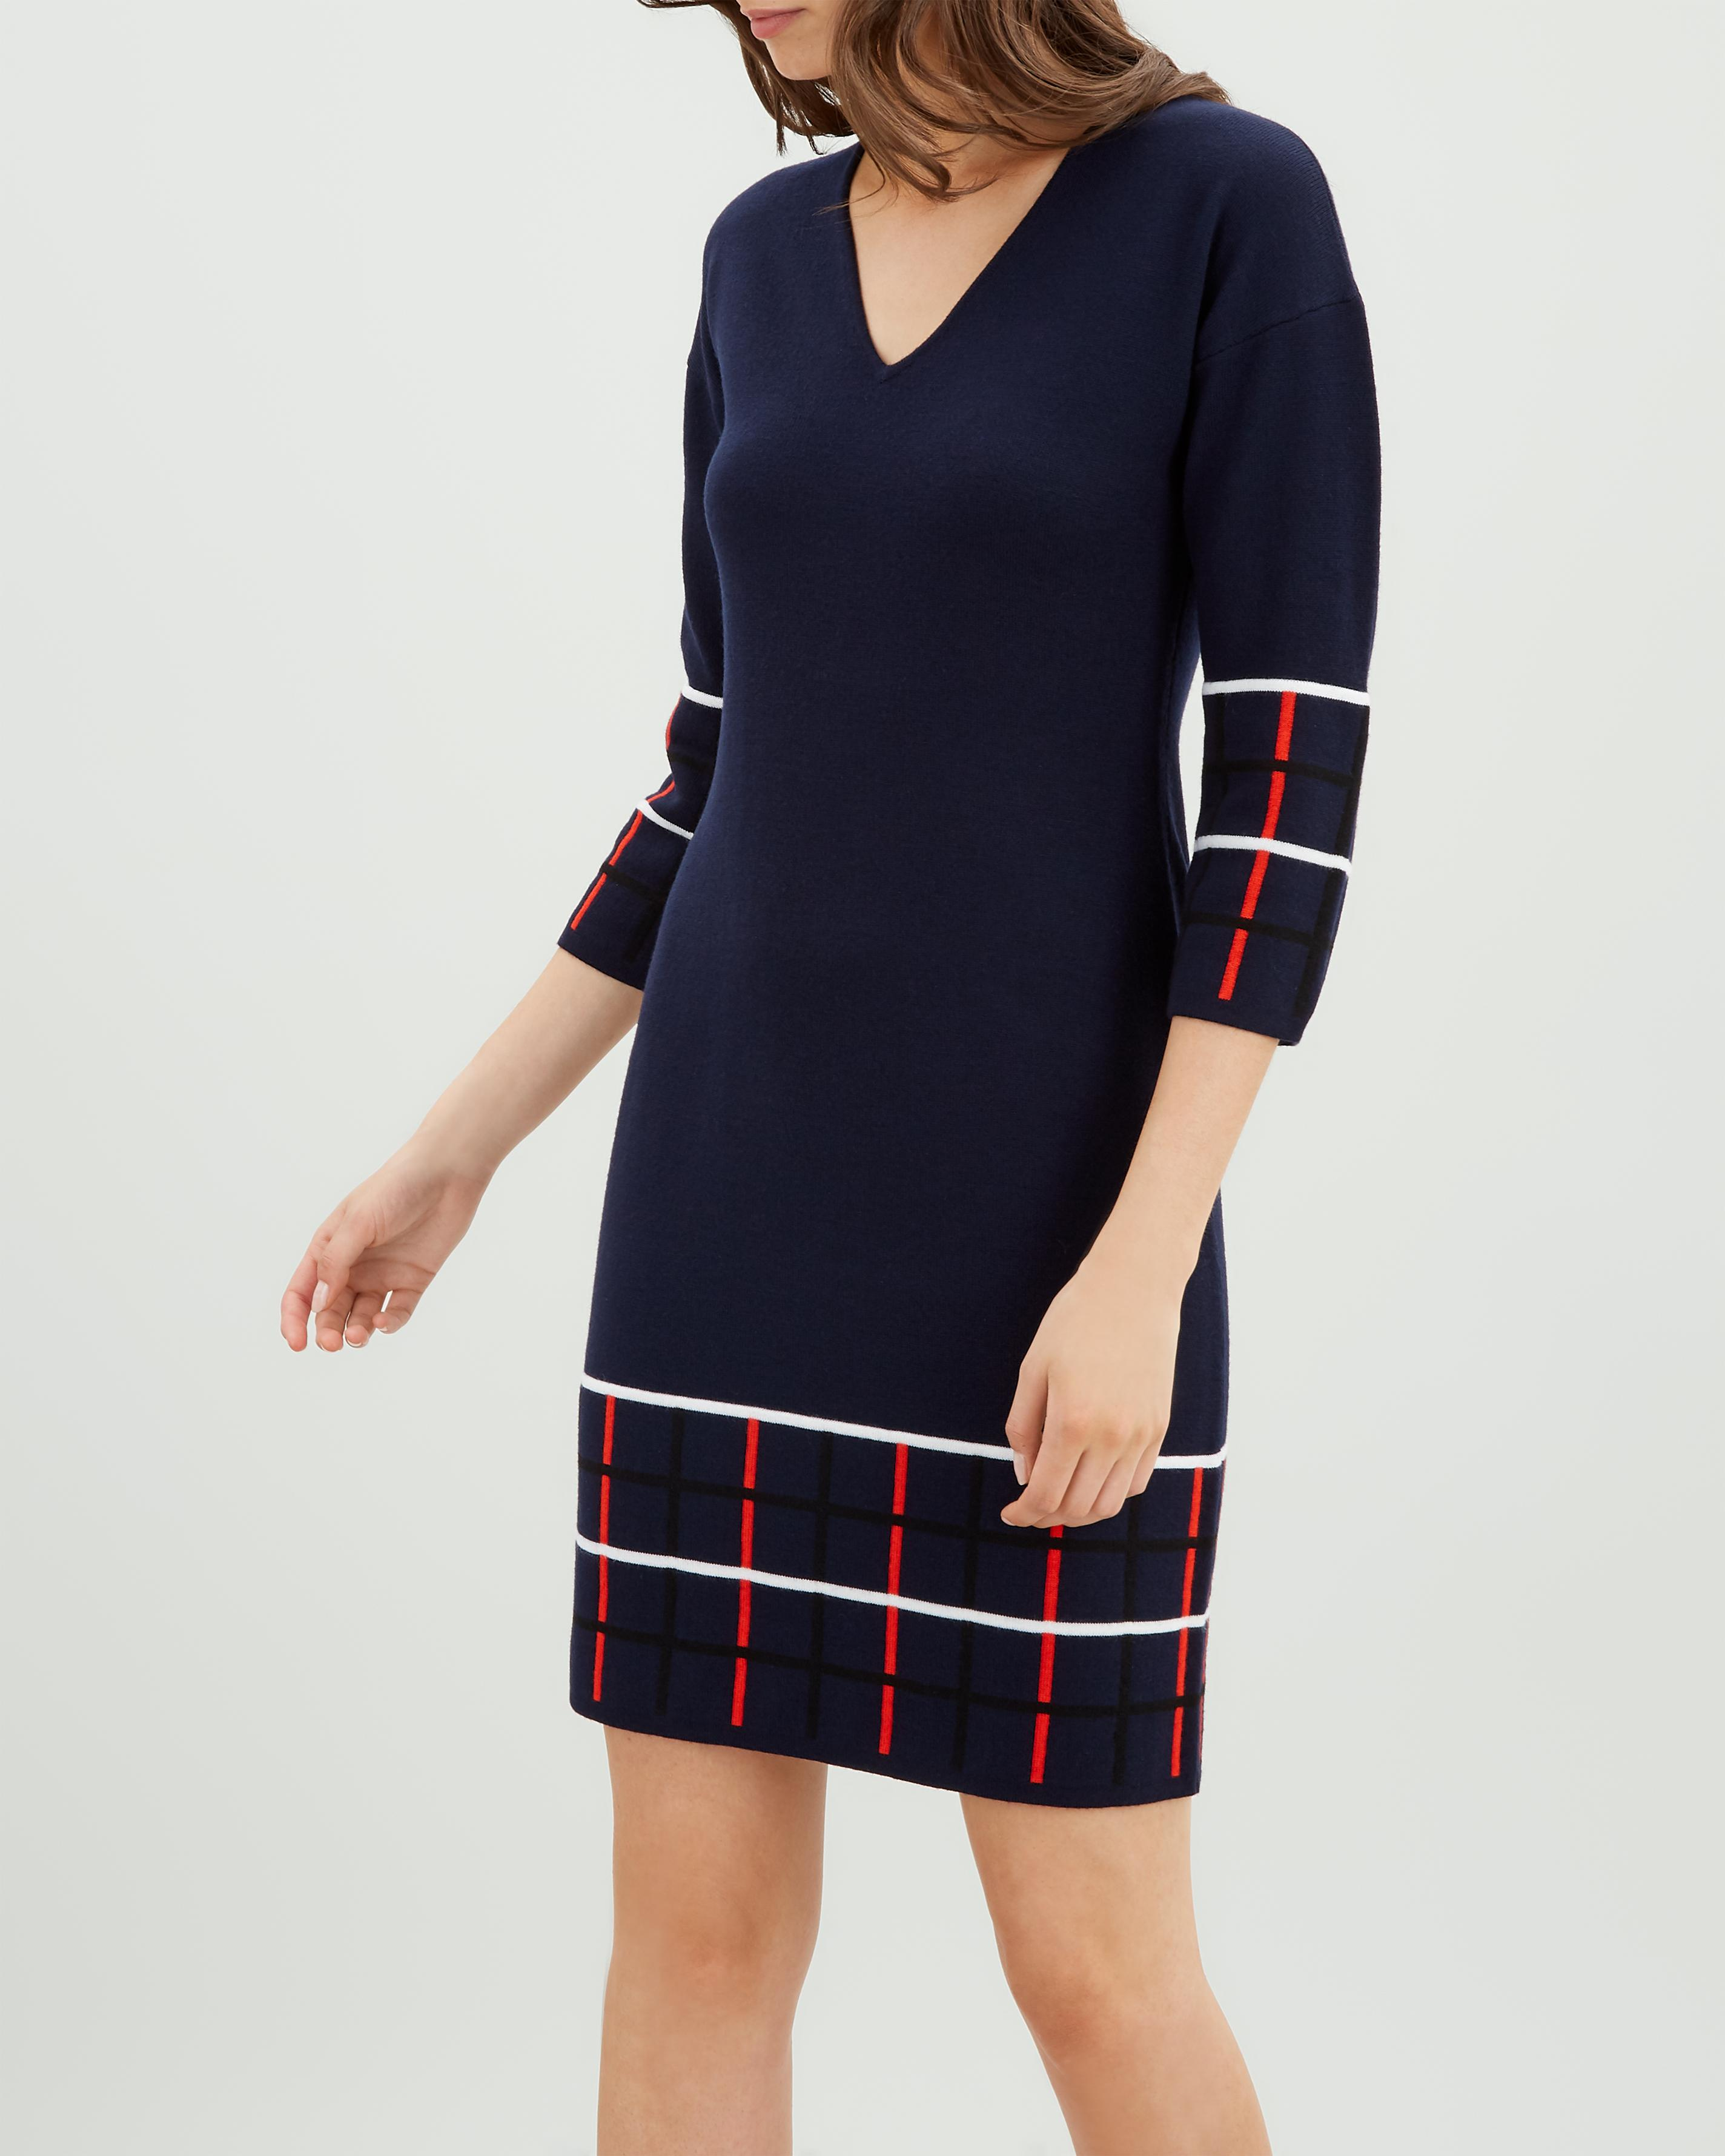 Jaeger Wool Check Knit Shift Dress in Blue - Lyst d6830a351